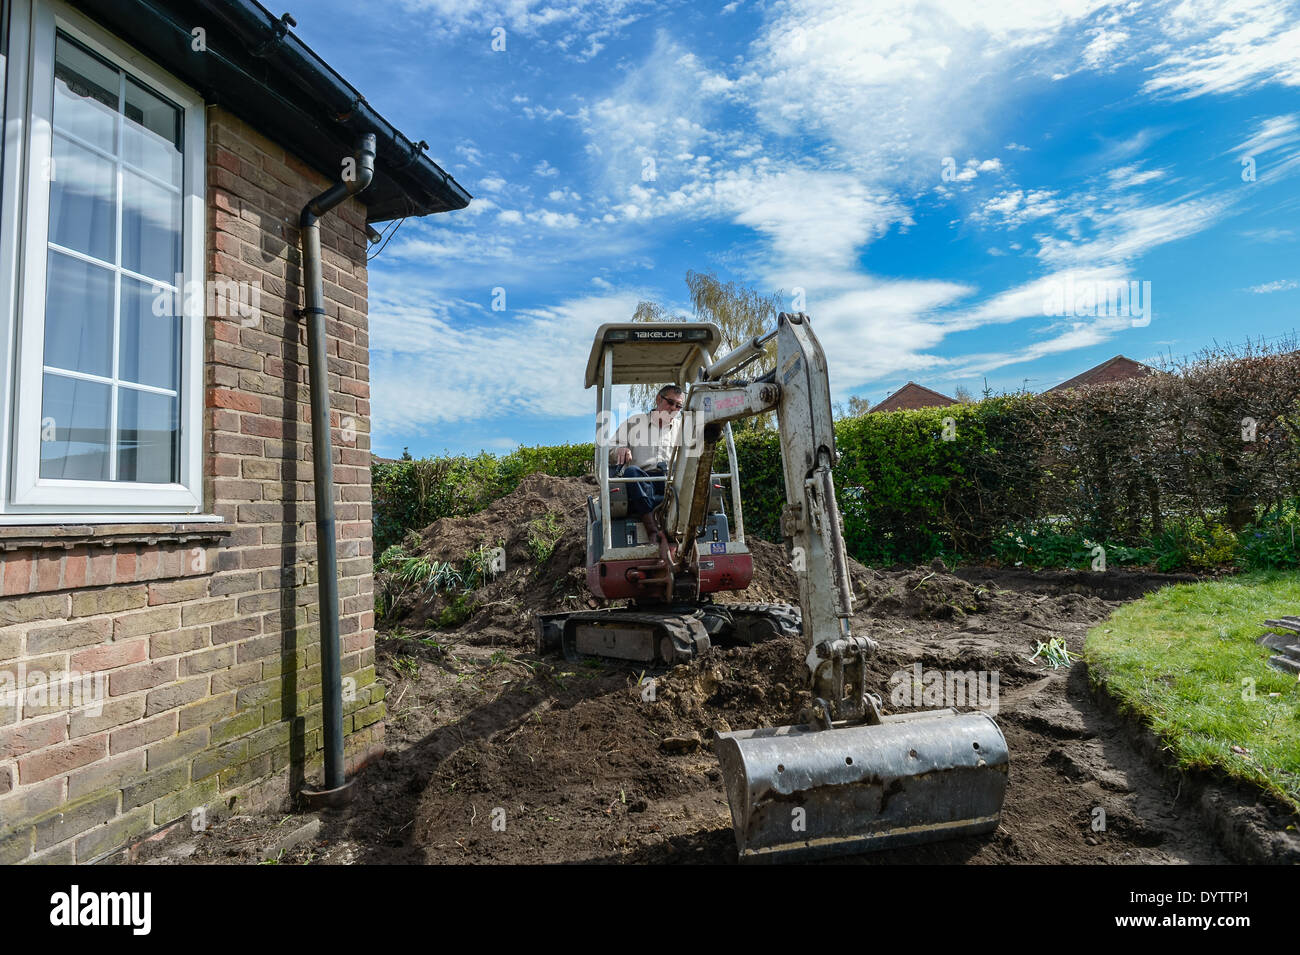 Excavating a lawn prior to laying a driveway using a micro compact excavator mechanical digger on a home improvement project. - Stock Image